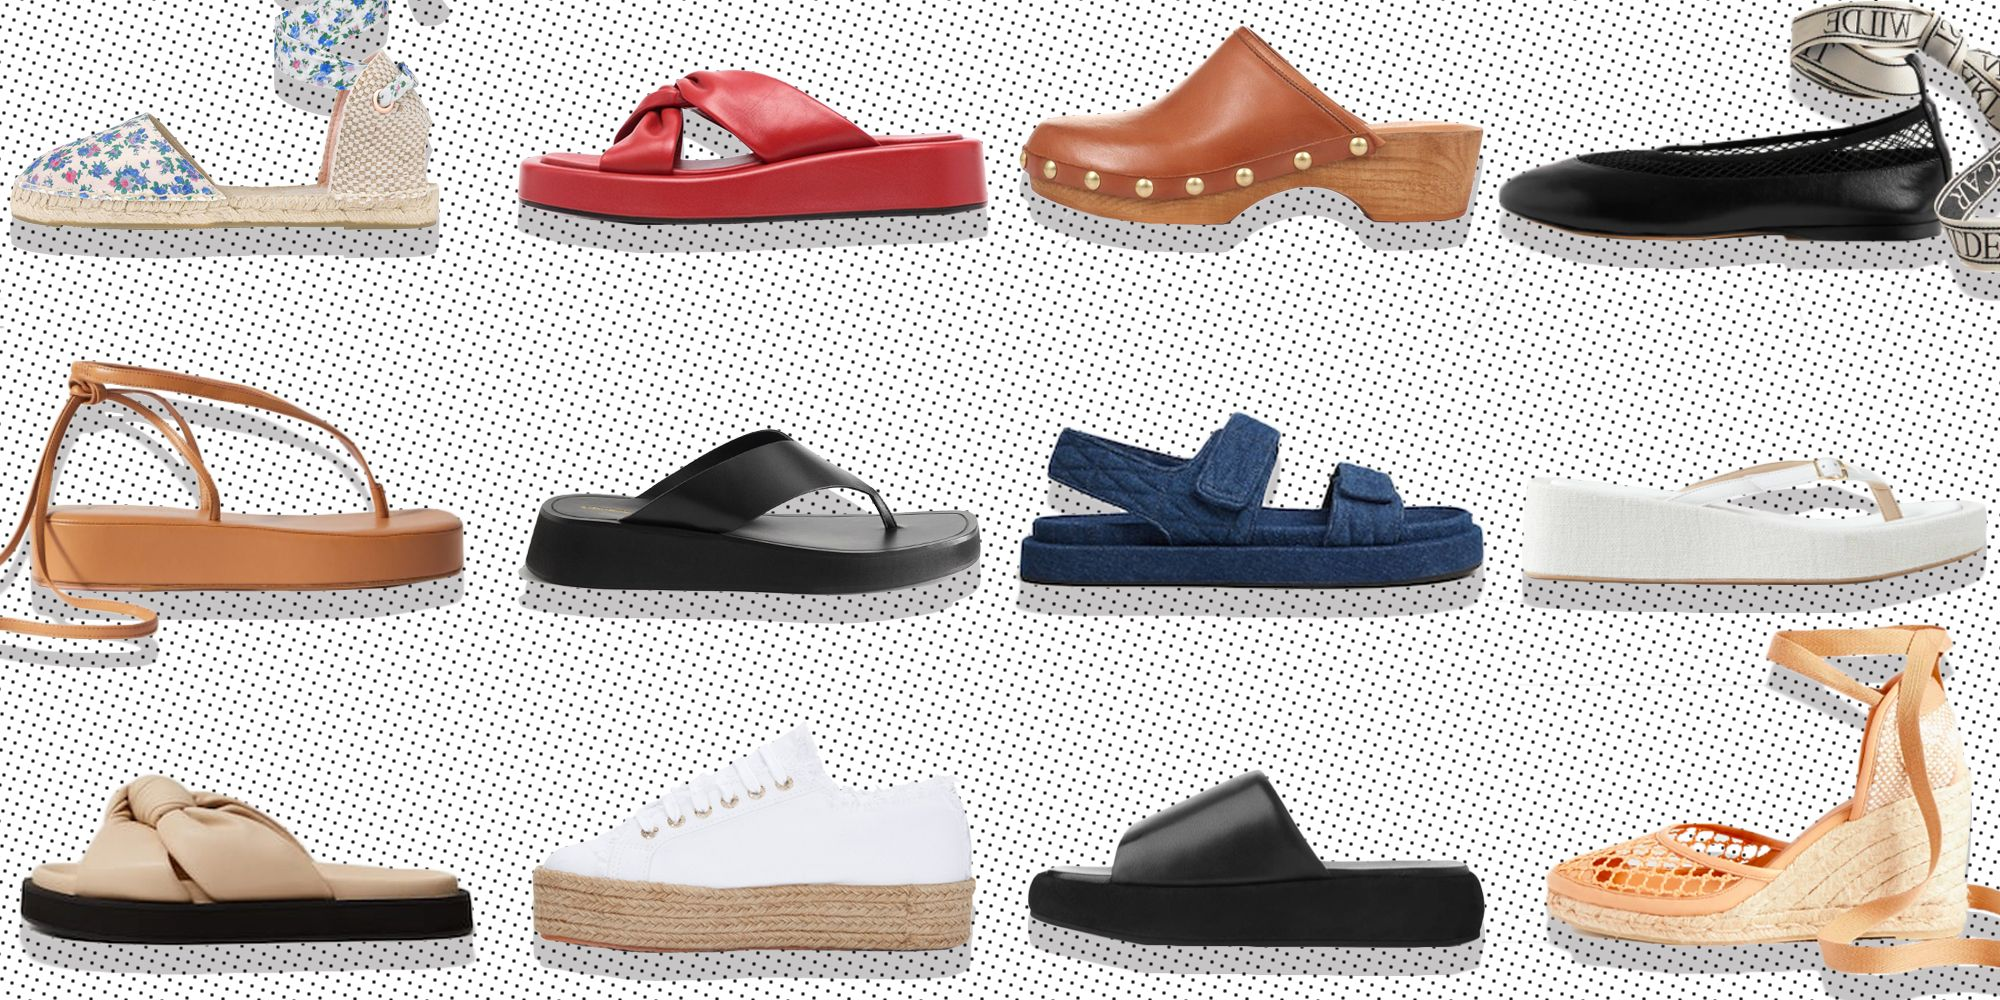 21 Best Summer Shoe Styles To Shop This Season